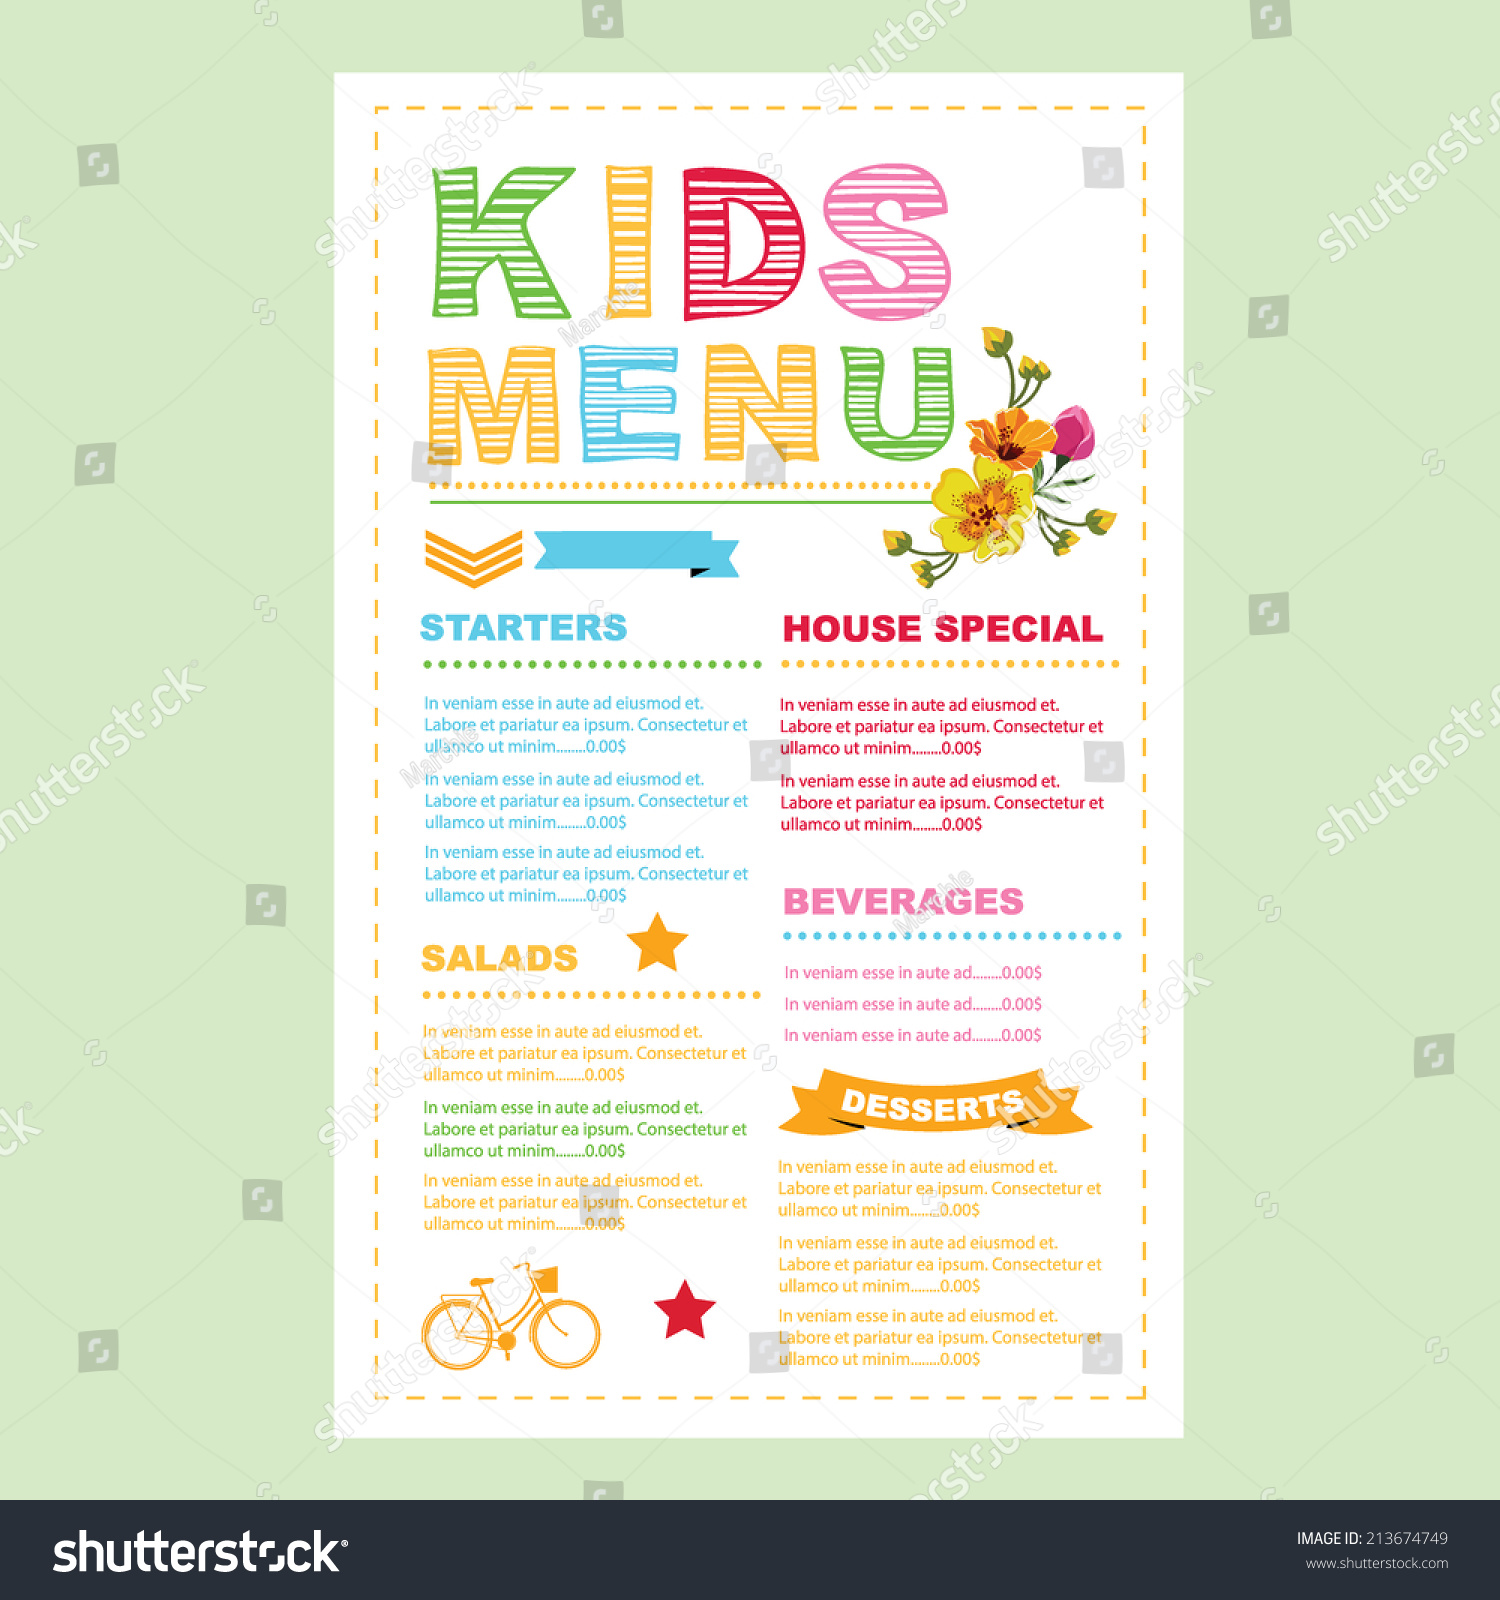 Free Menu Templates For Restaurants And Cafes. High Resolution PDF Artwork  Templates